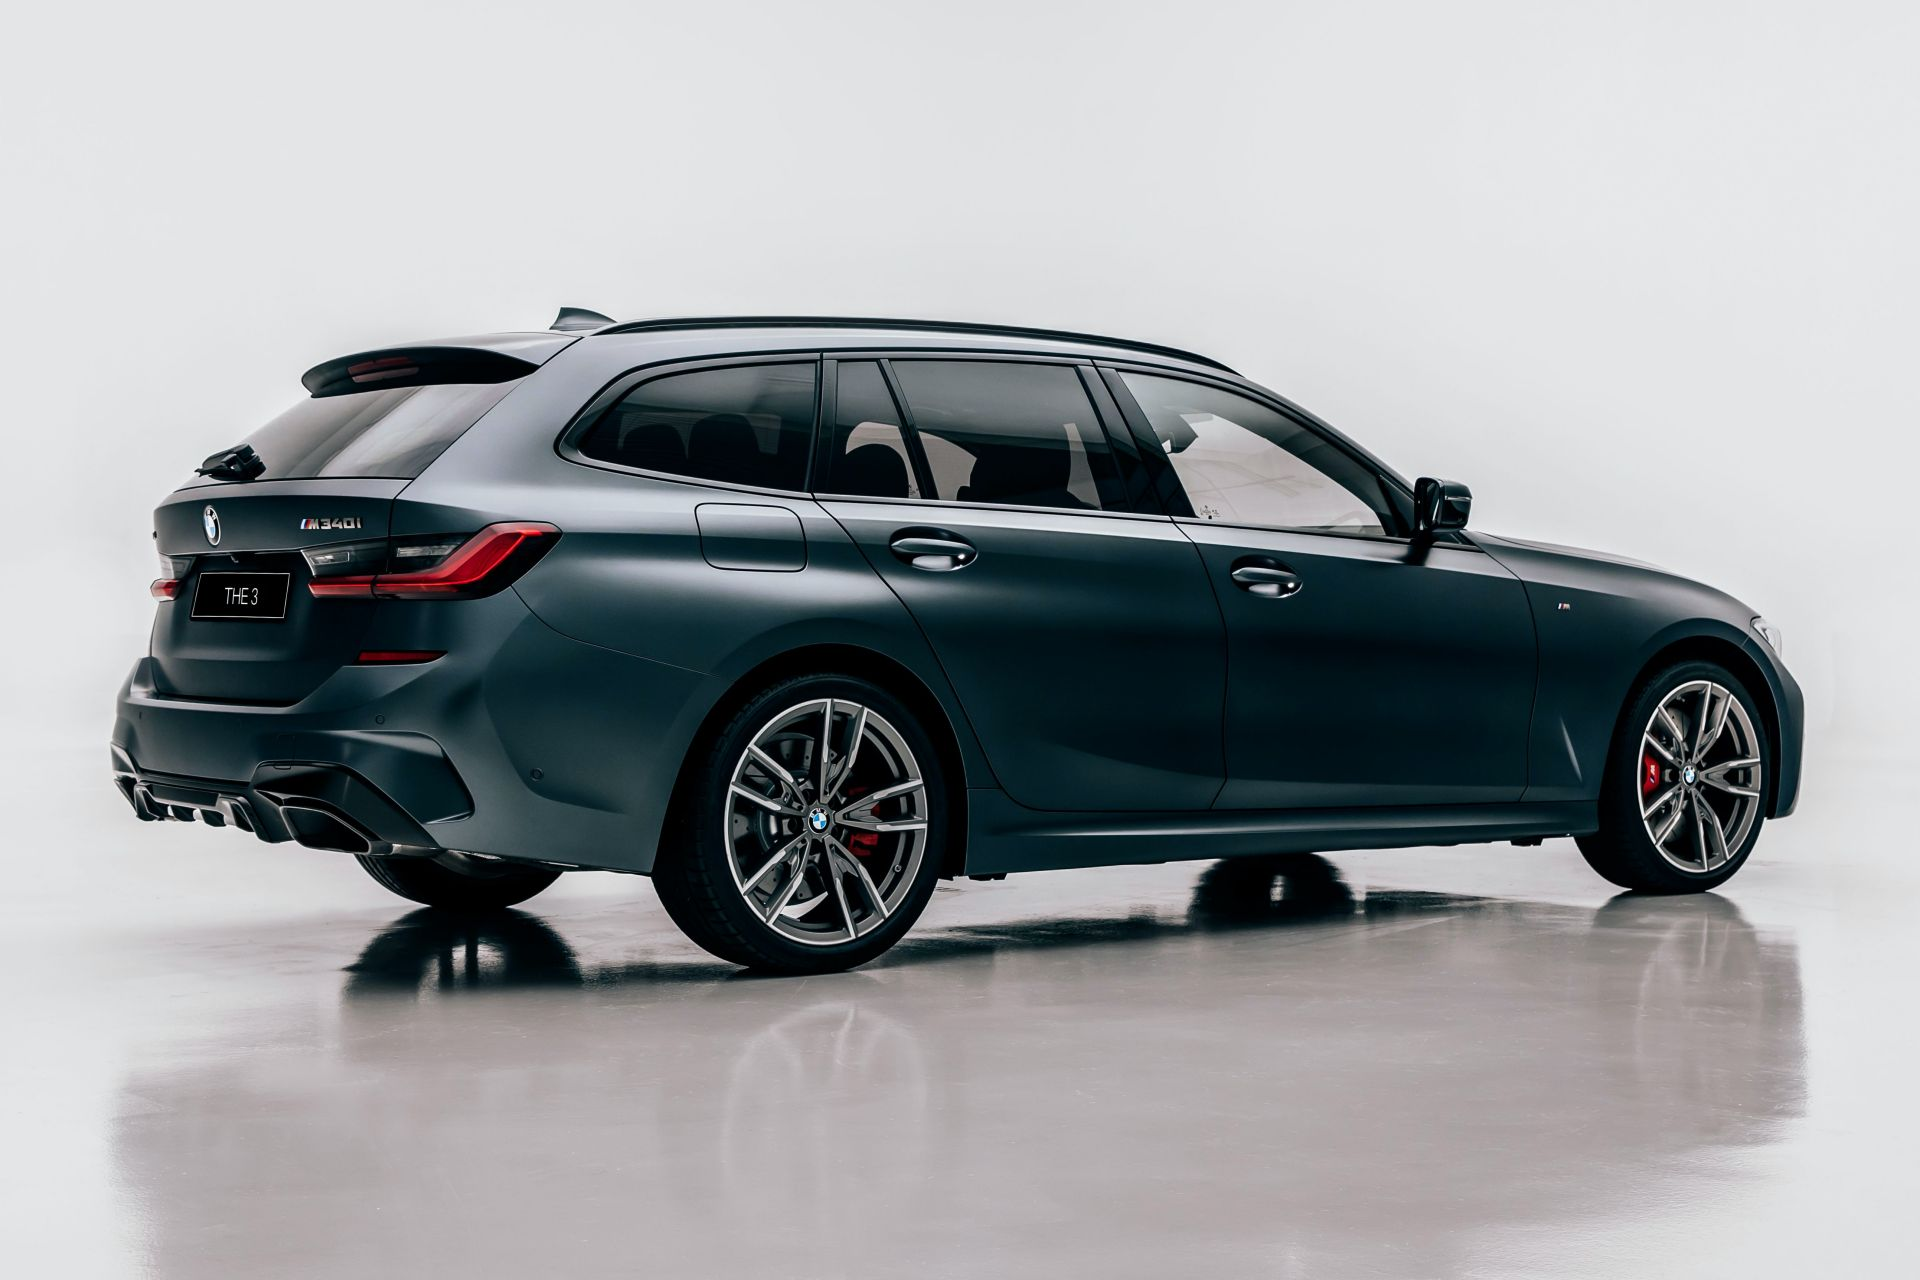 2020-BMW-M340i-xDrive-Touring-First-Edition-44